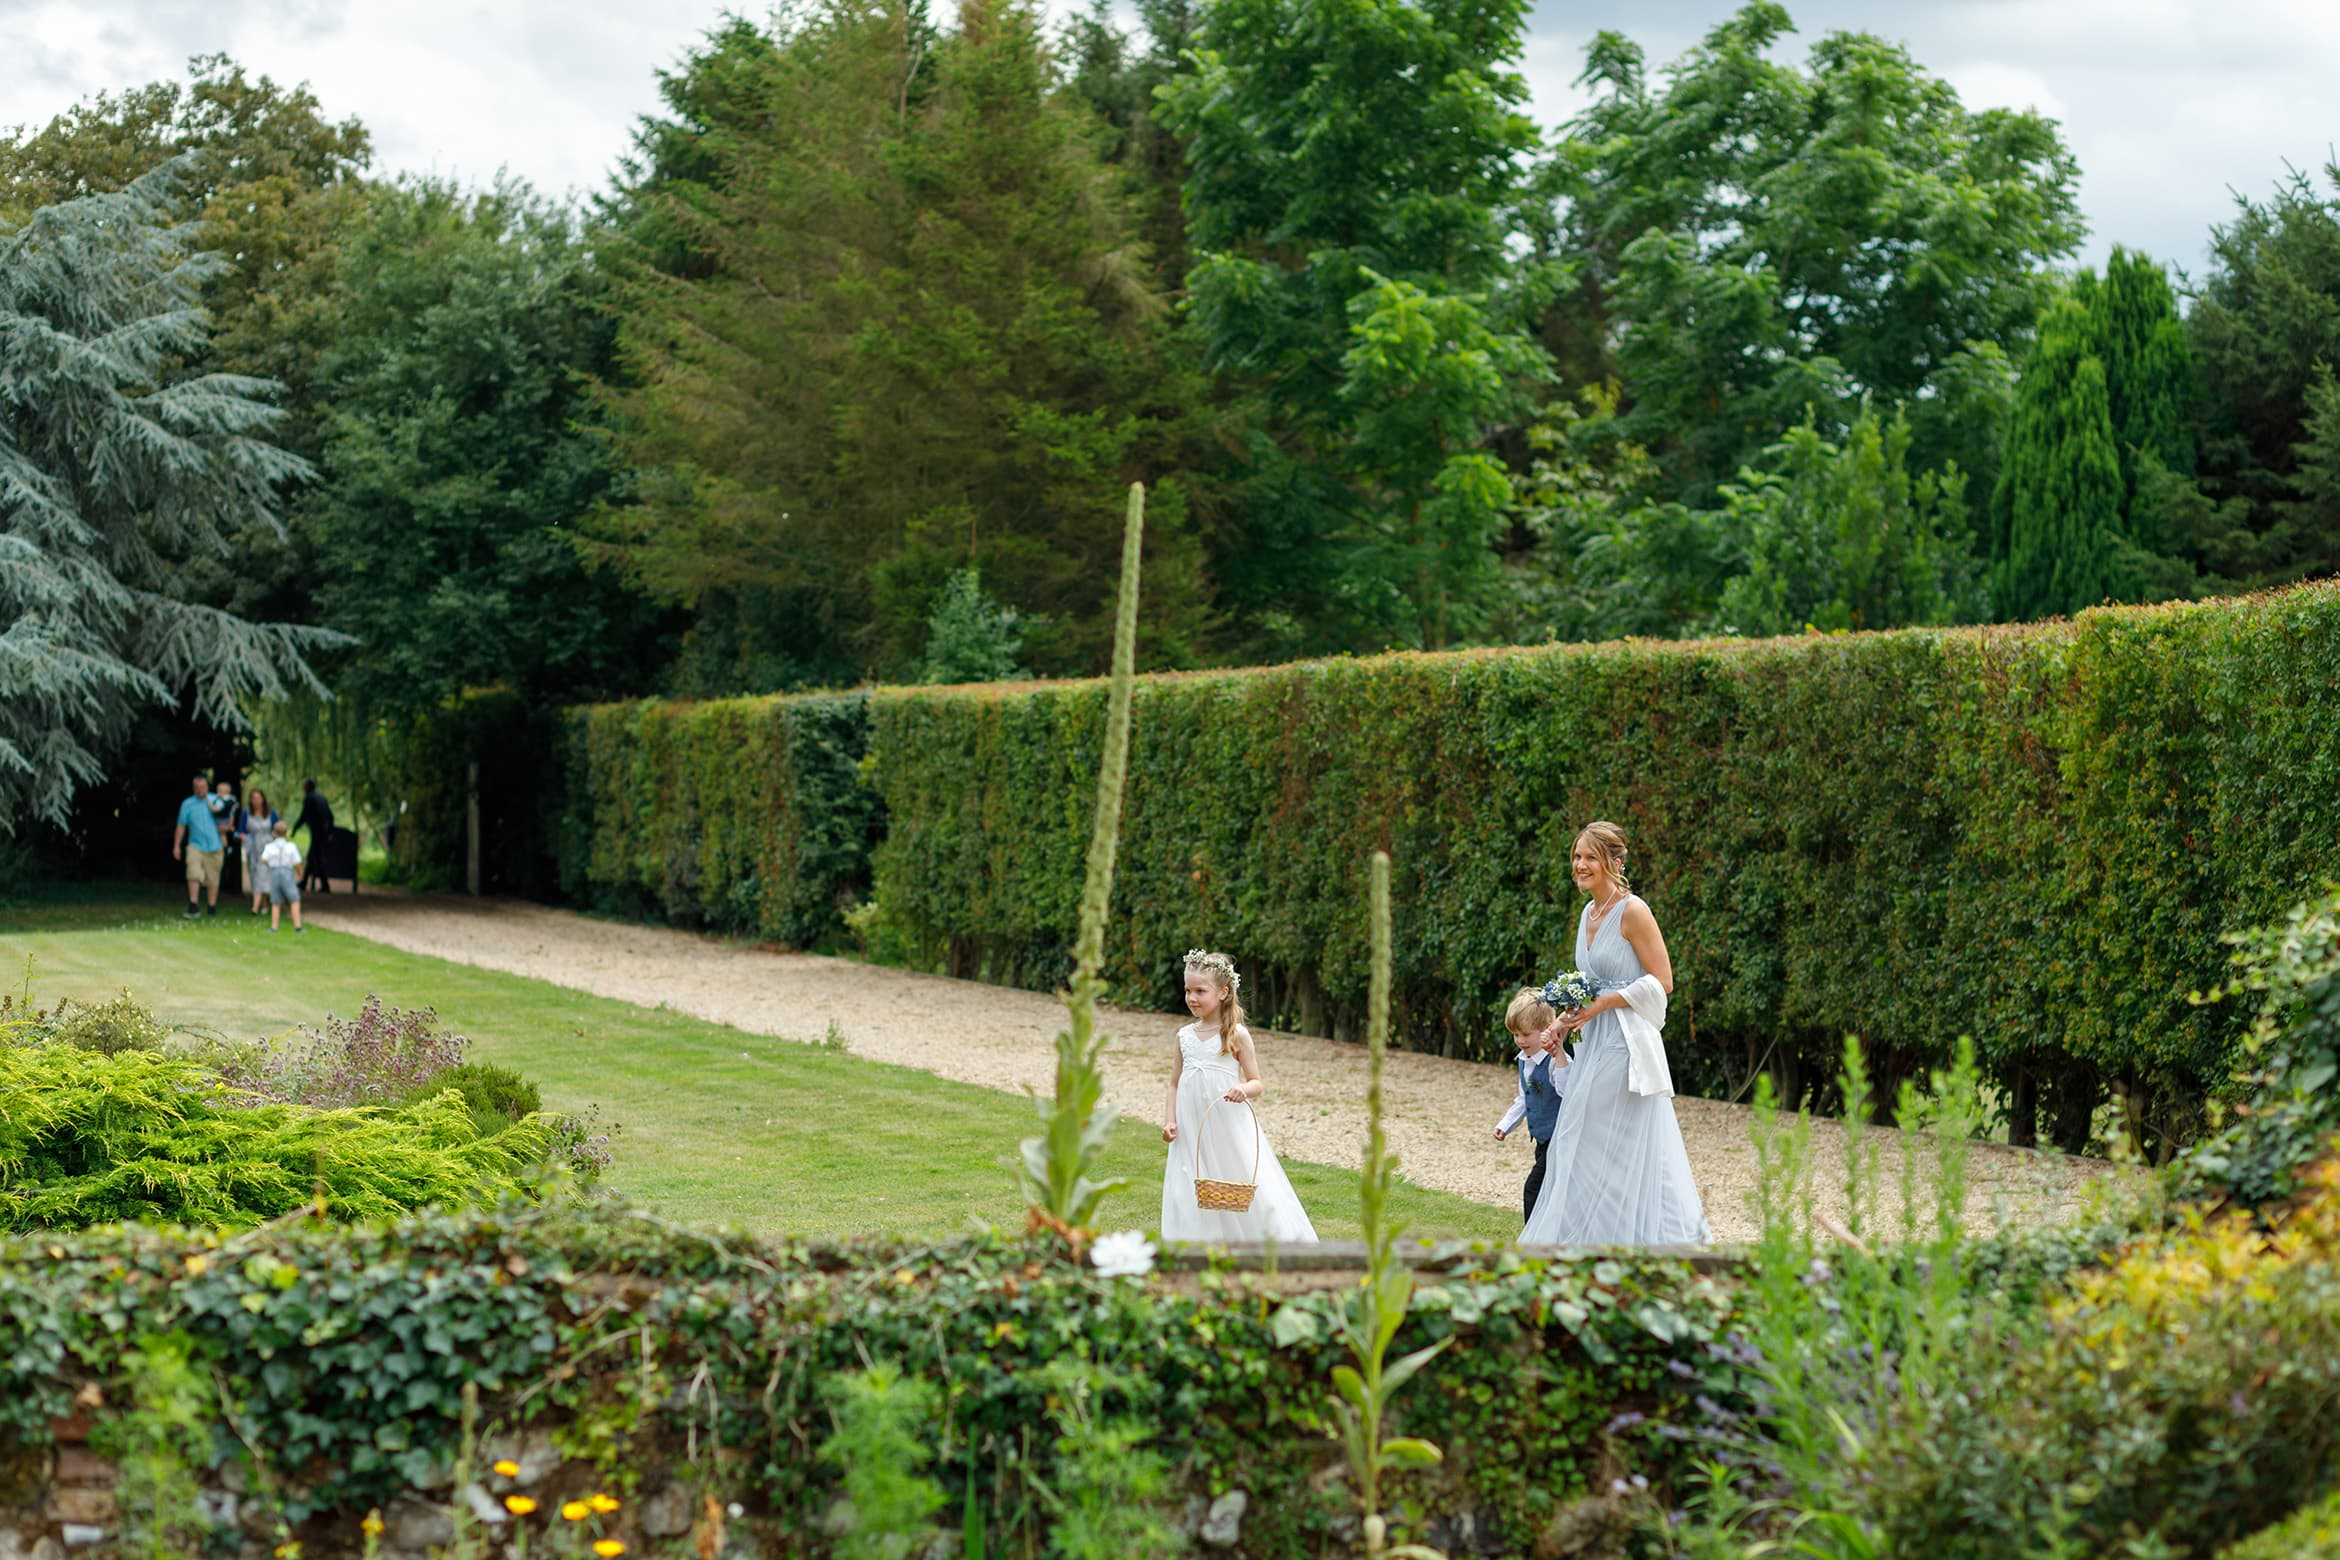 the bridesmaid and flowergirl walk across the lawn